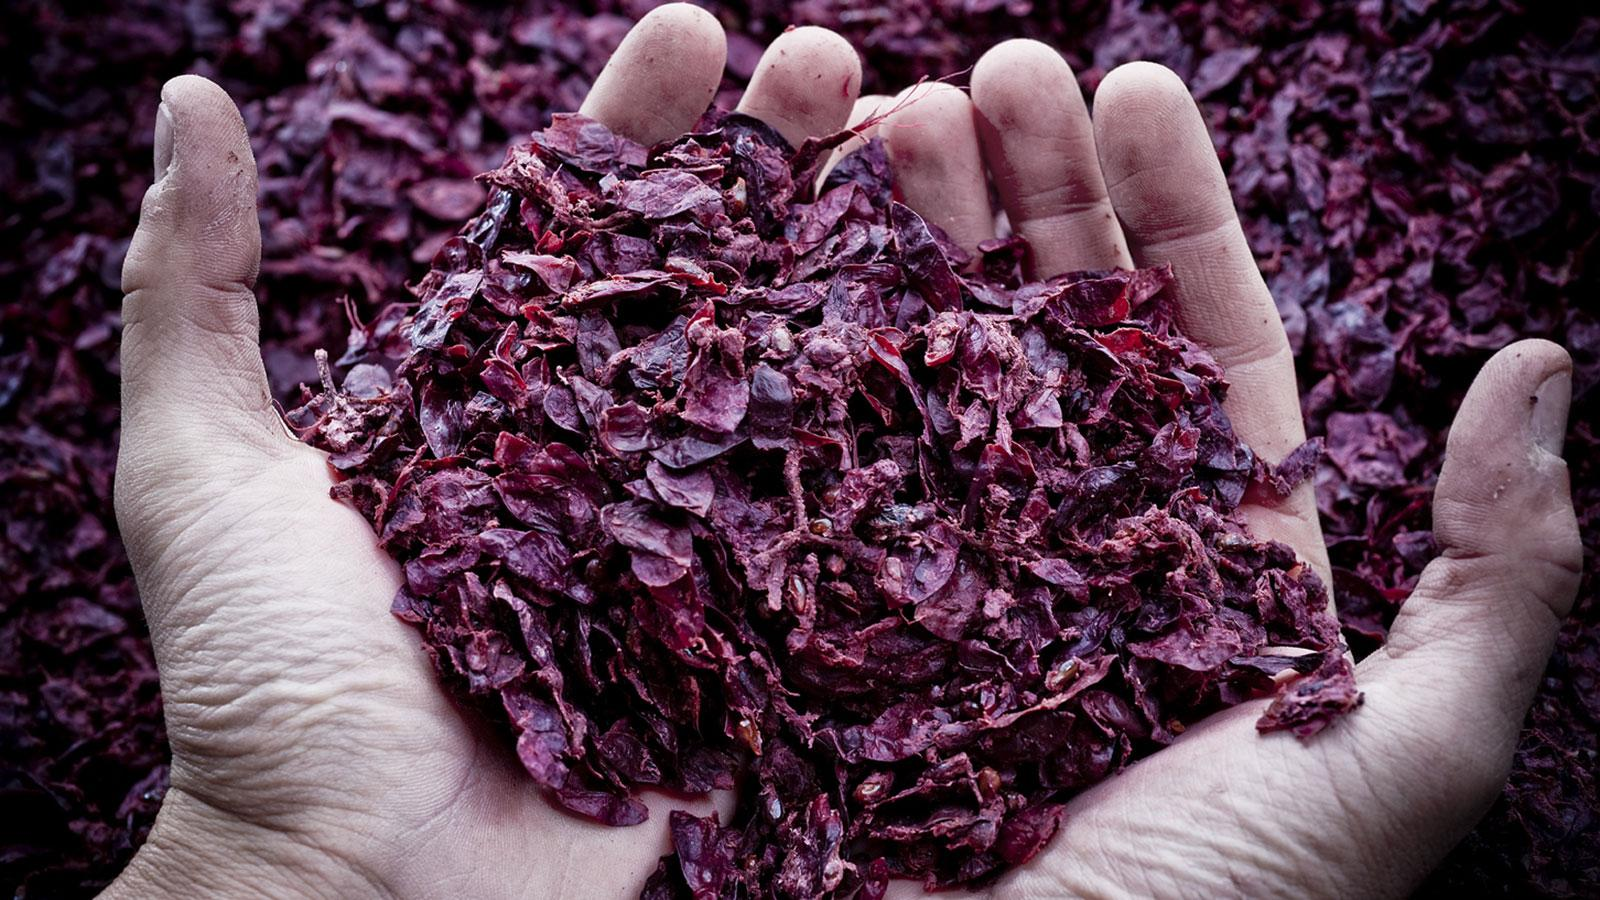 The raw material for making grappa: pomace, the grape skins (as well as some seeds and stems) left over after wine fermentation.